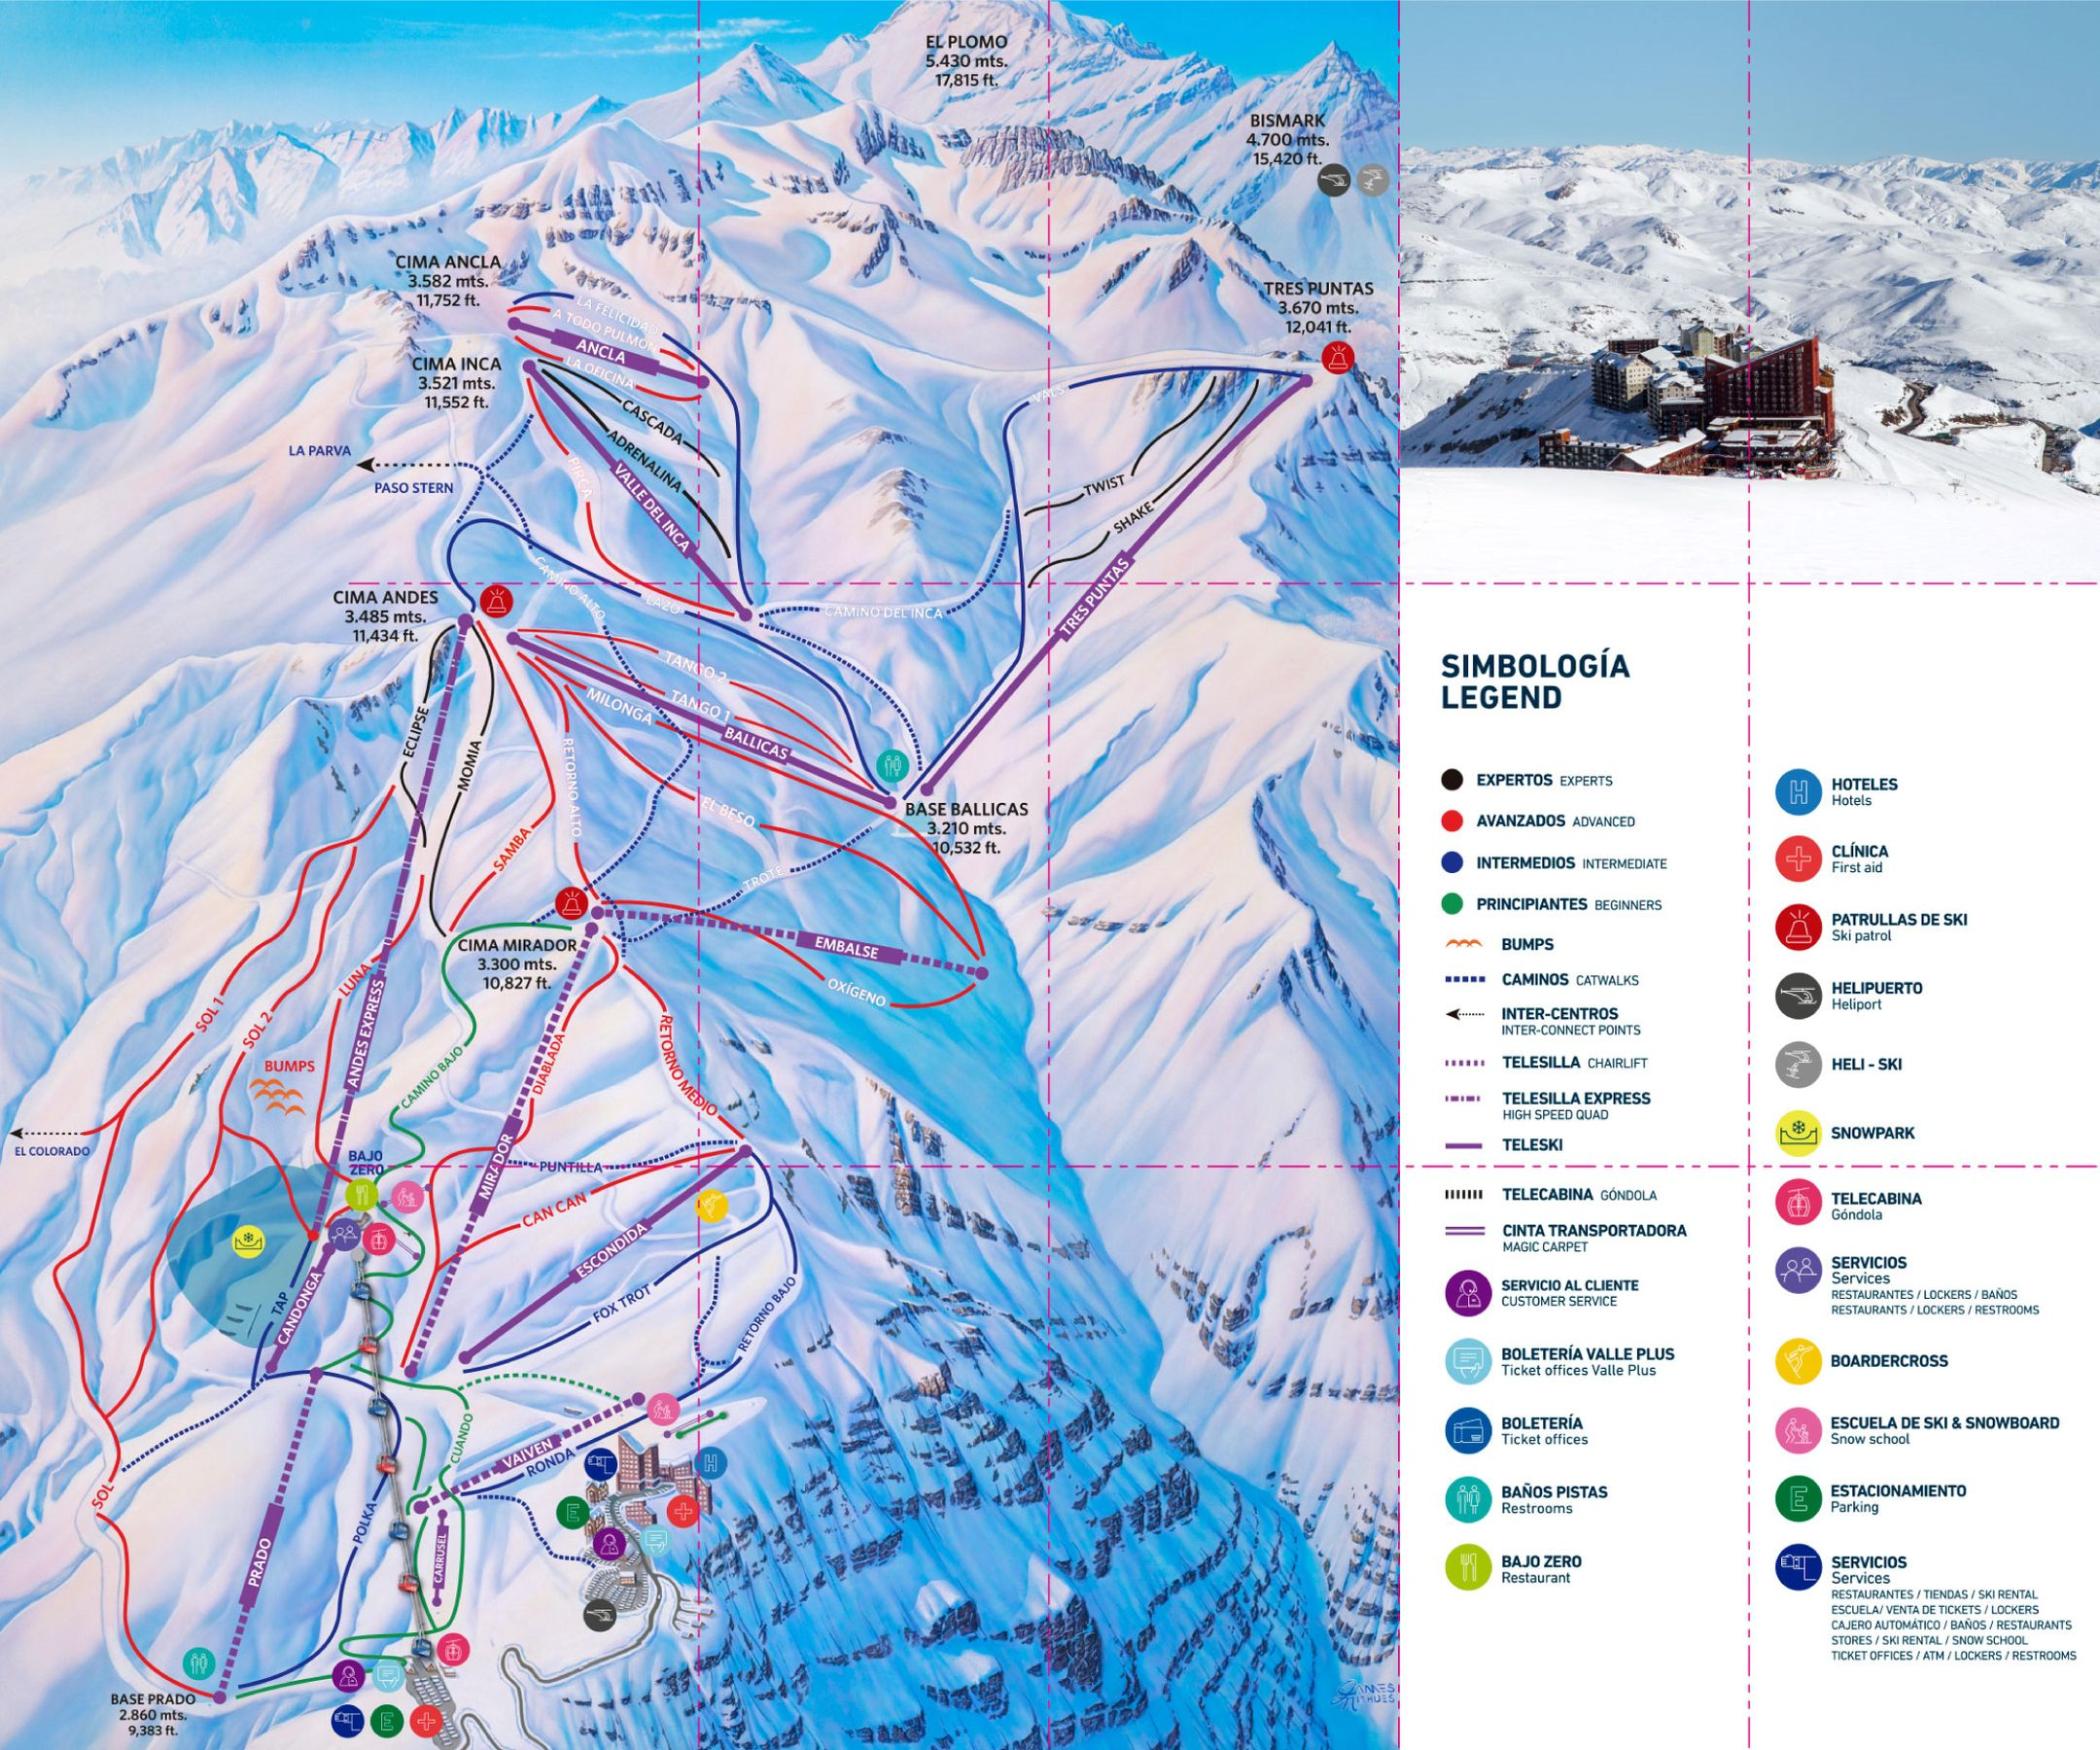 Valle Nevado ski-resort-trail-map Chile ripatrip